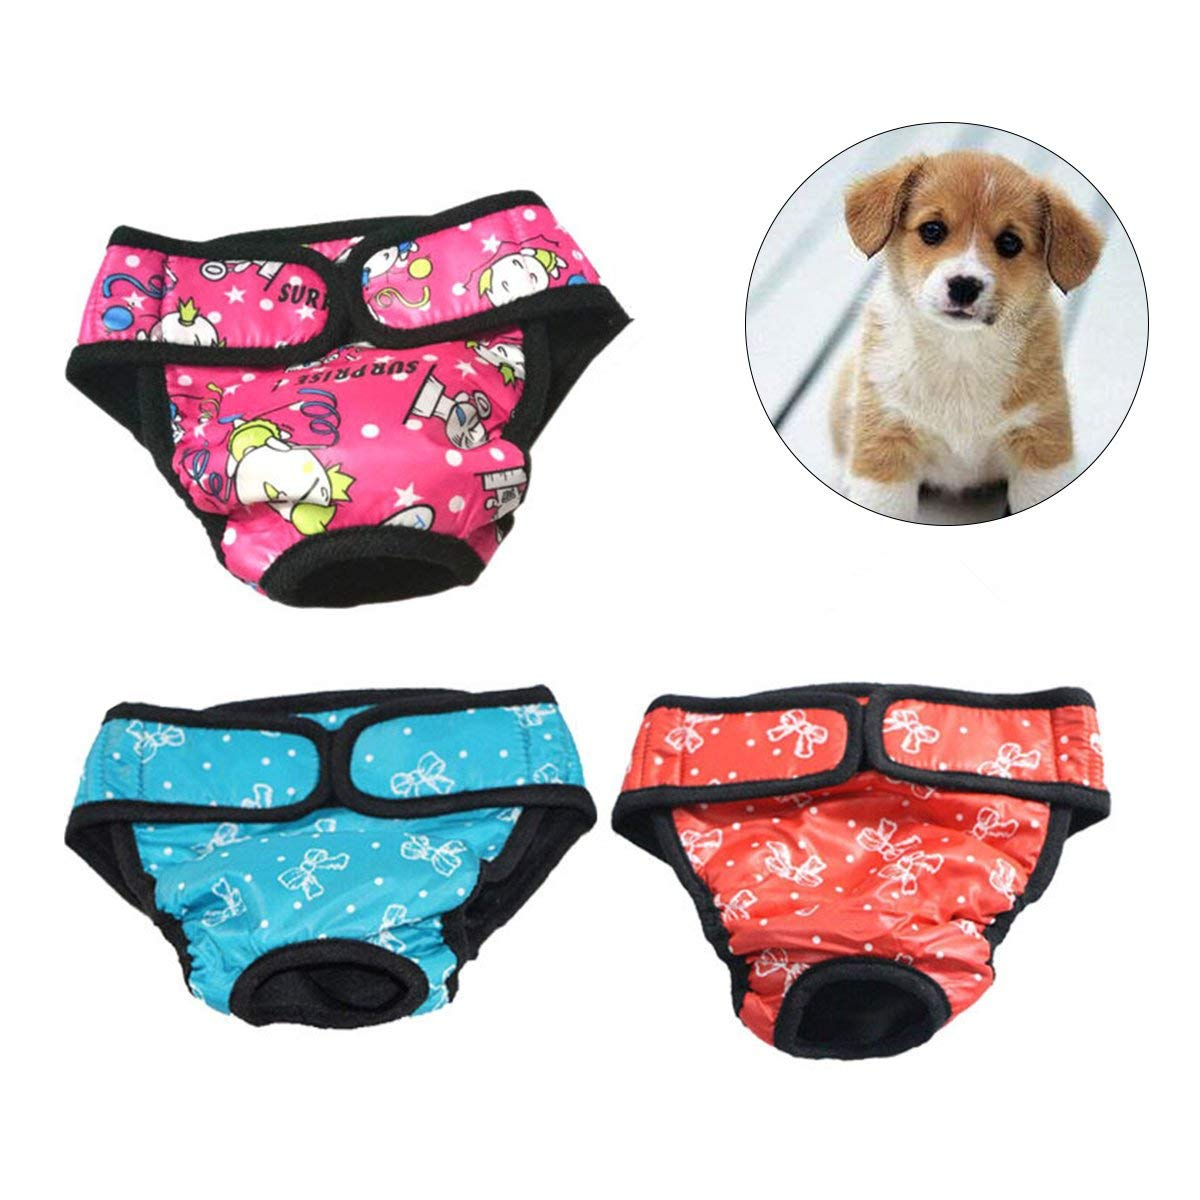 UEETEK 3Pcs Pet Physiological Pants, Washable Dog Diaper, Reusable Dog Sanitary Shorts Panties Menstruation Underwear Briefs - Size XS